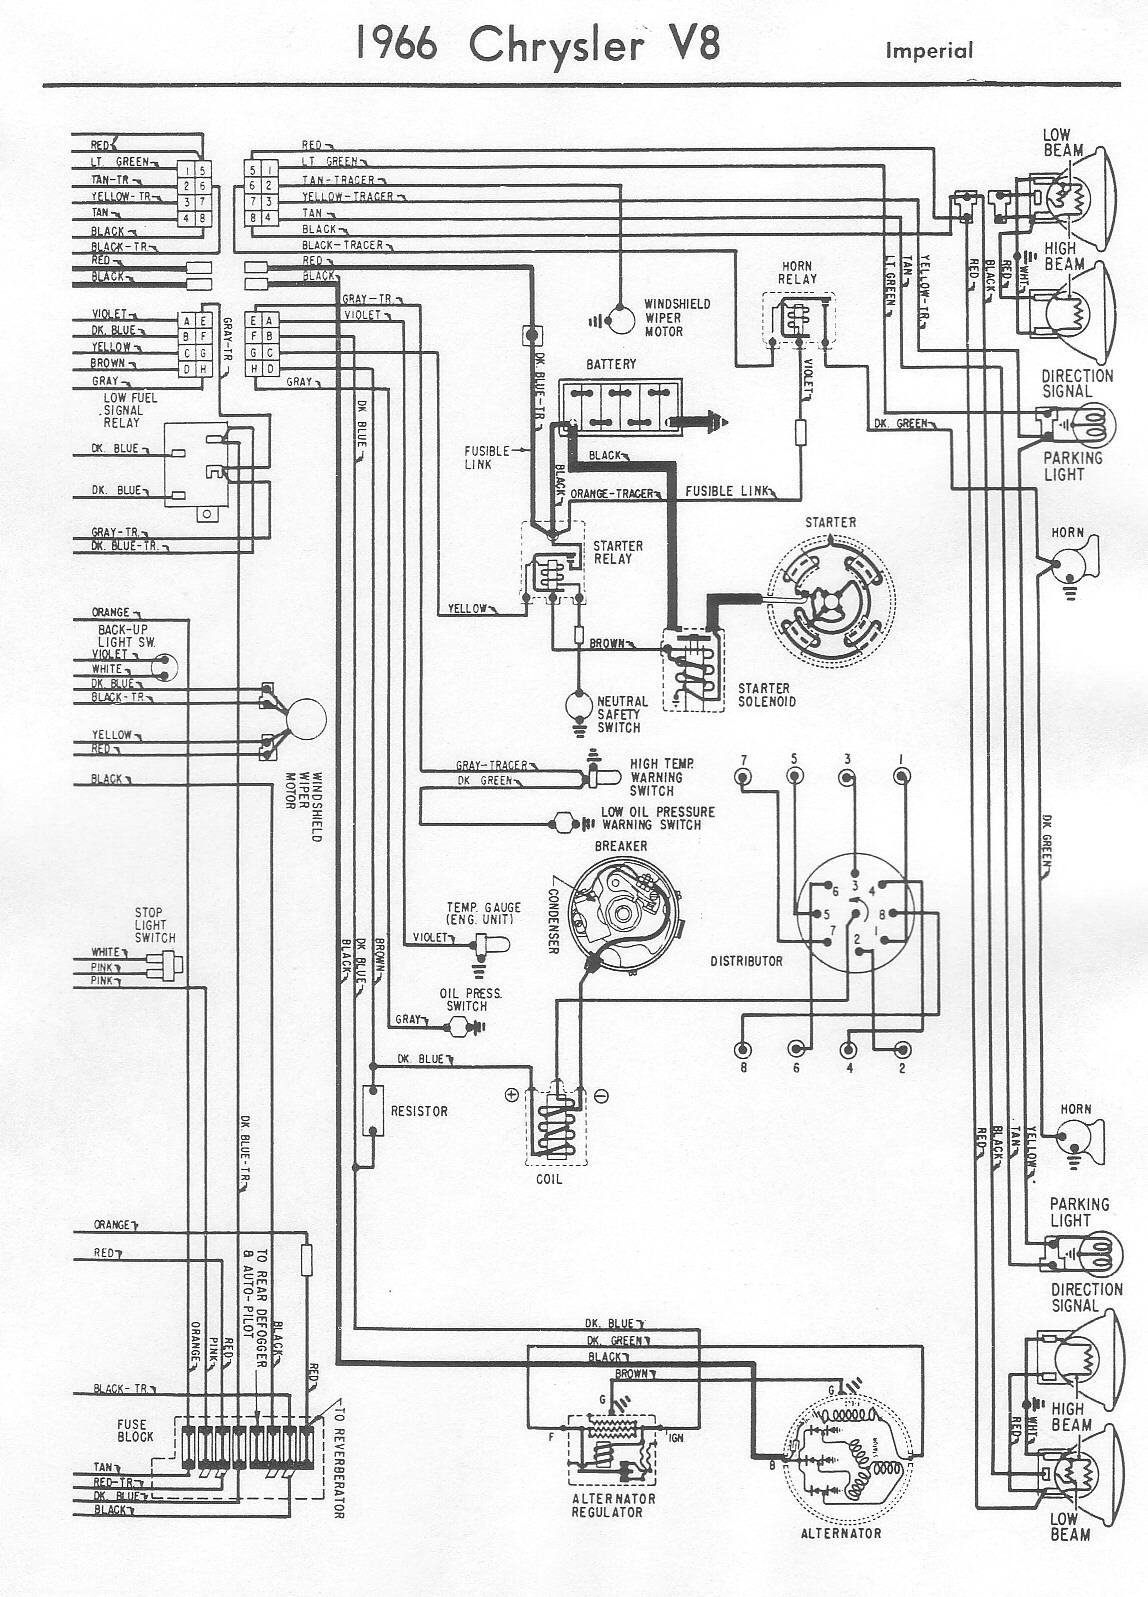 Typerims Acurazine  munity further 2002 Vacuum Hose Diagram Gmc 2 2l together with Valve Location On 2003 Honda Accord Expansion further Daewoo Espero Audio Stereo Wiring System also 99 Buick Century Engine Diagram. on acura tl ac wiring diagram